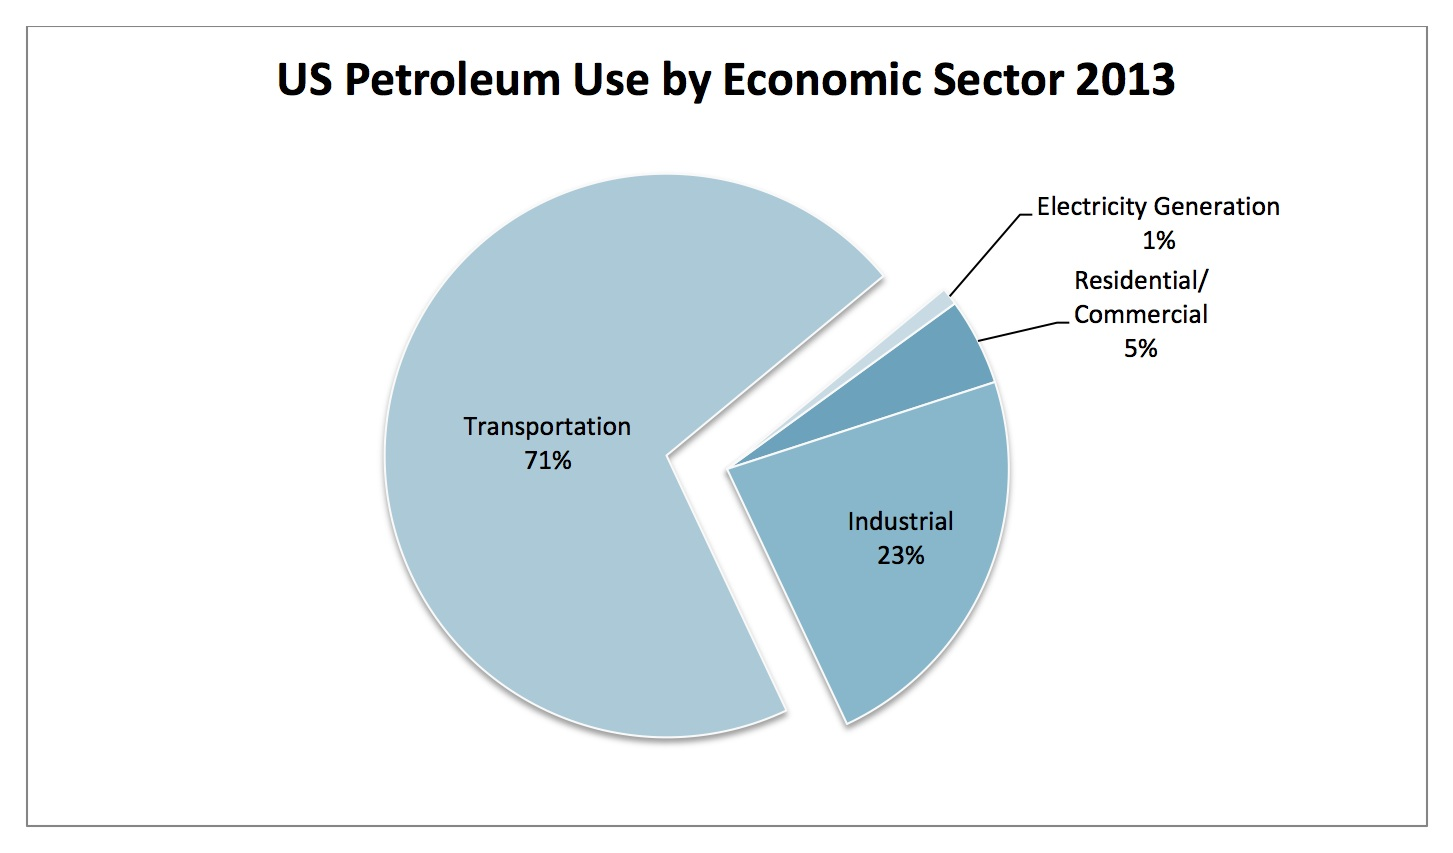 US Petroleum Use Sector 2013